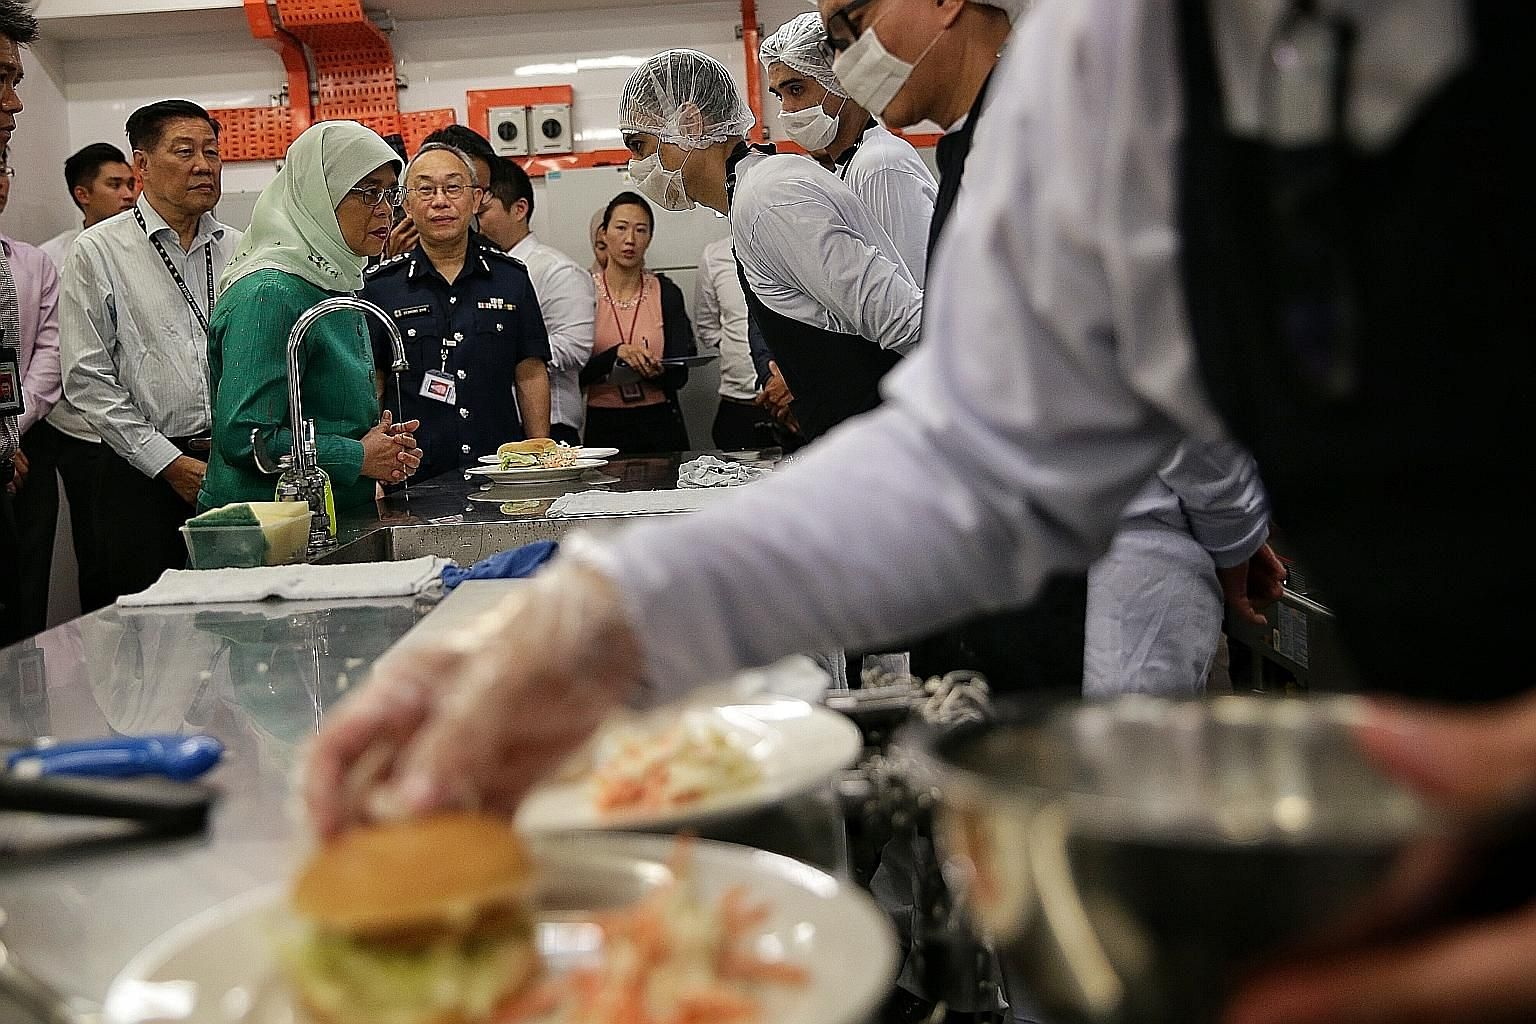 President Halimah Yacob interacting with inmates during her visit to the Hope Cafe, a training kitchen and restaurant in Changi Prison Complex where inmates undergo hands-on training in culinary skills and food and beverage operations - to enable the